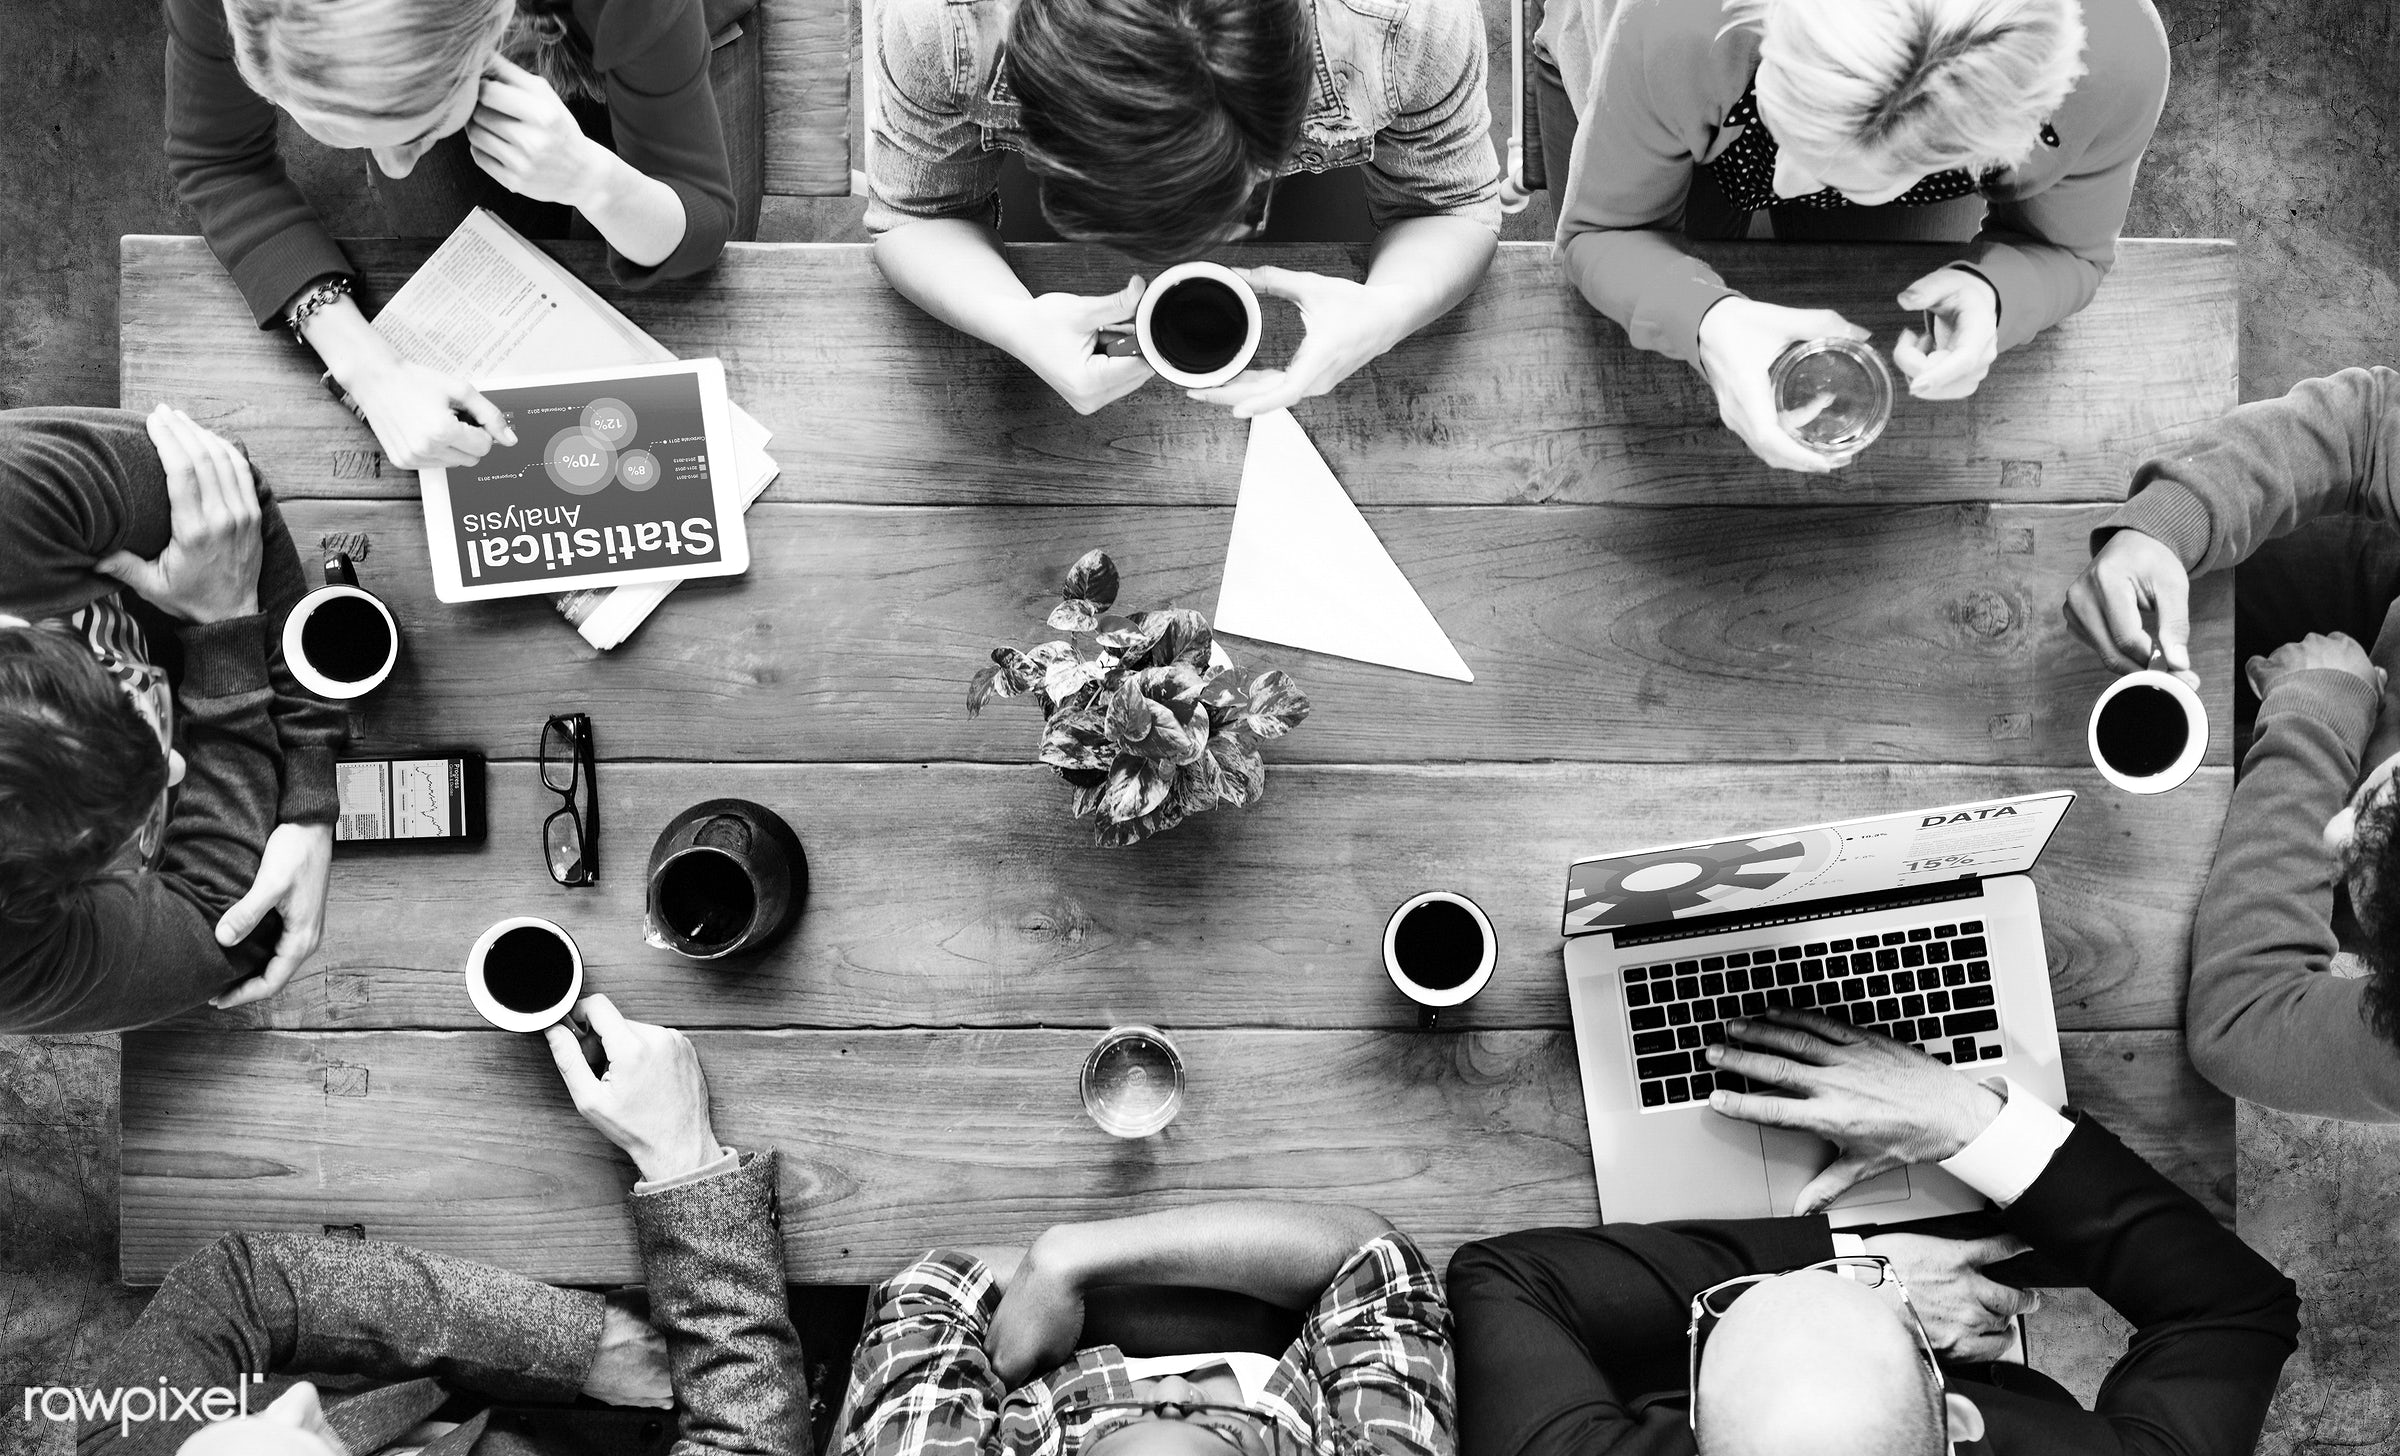 aerial view, board room, brainstorm, brainstorming, business, business people, business person, cafe, casual, coffee,...